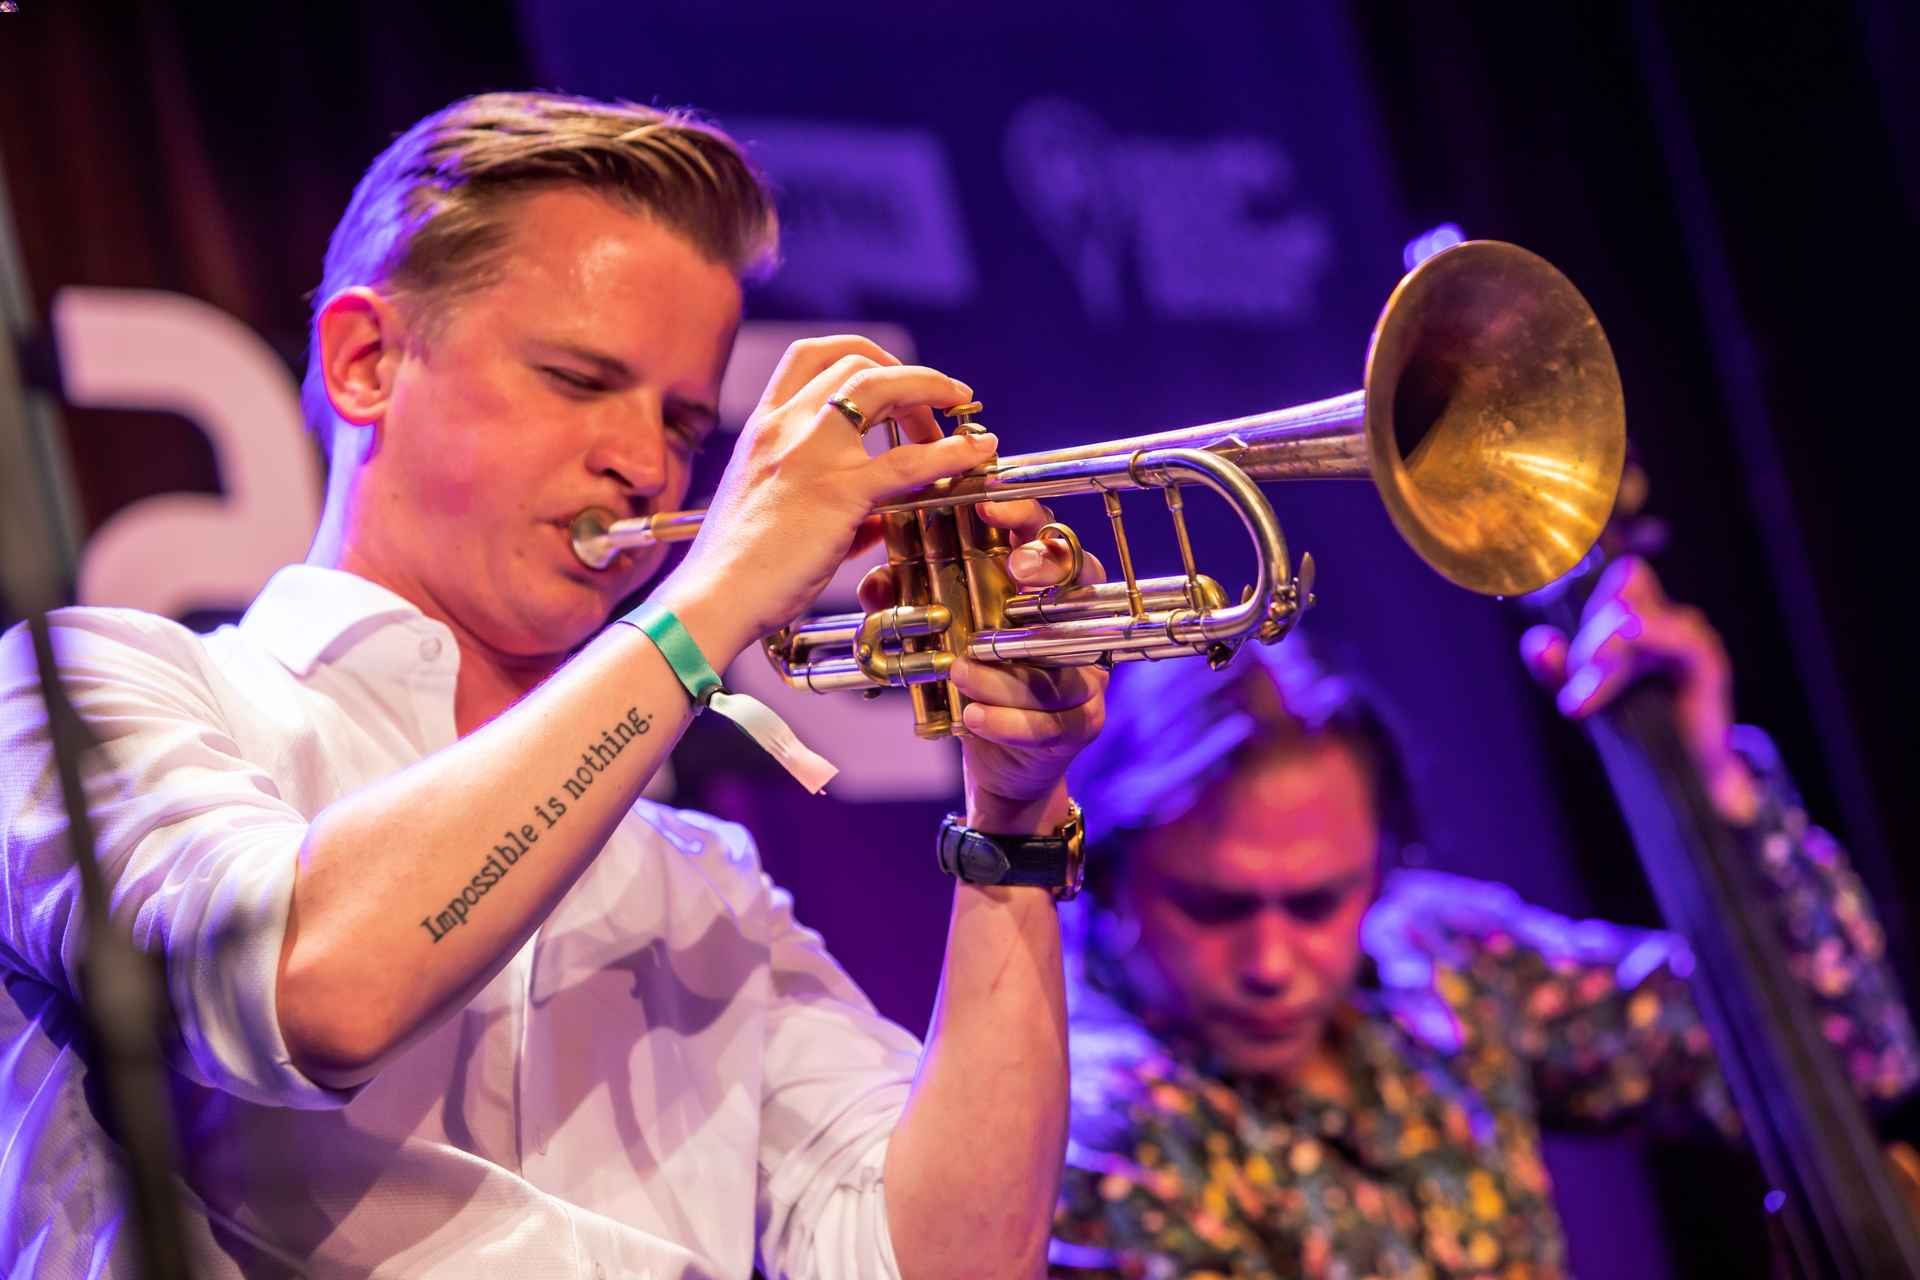 injazz teus nobel north sea round town